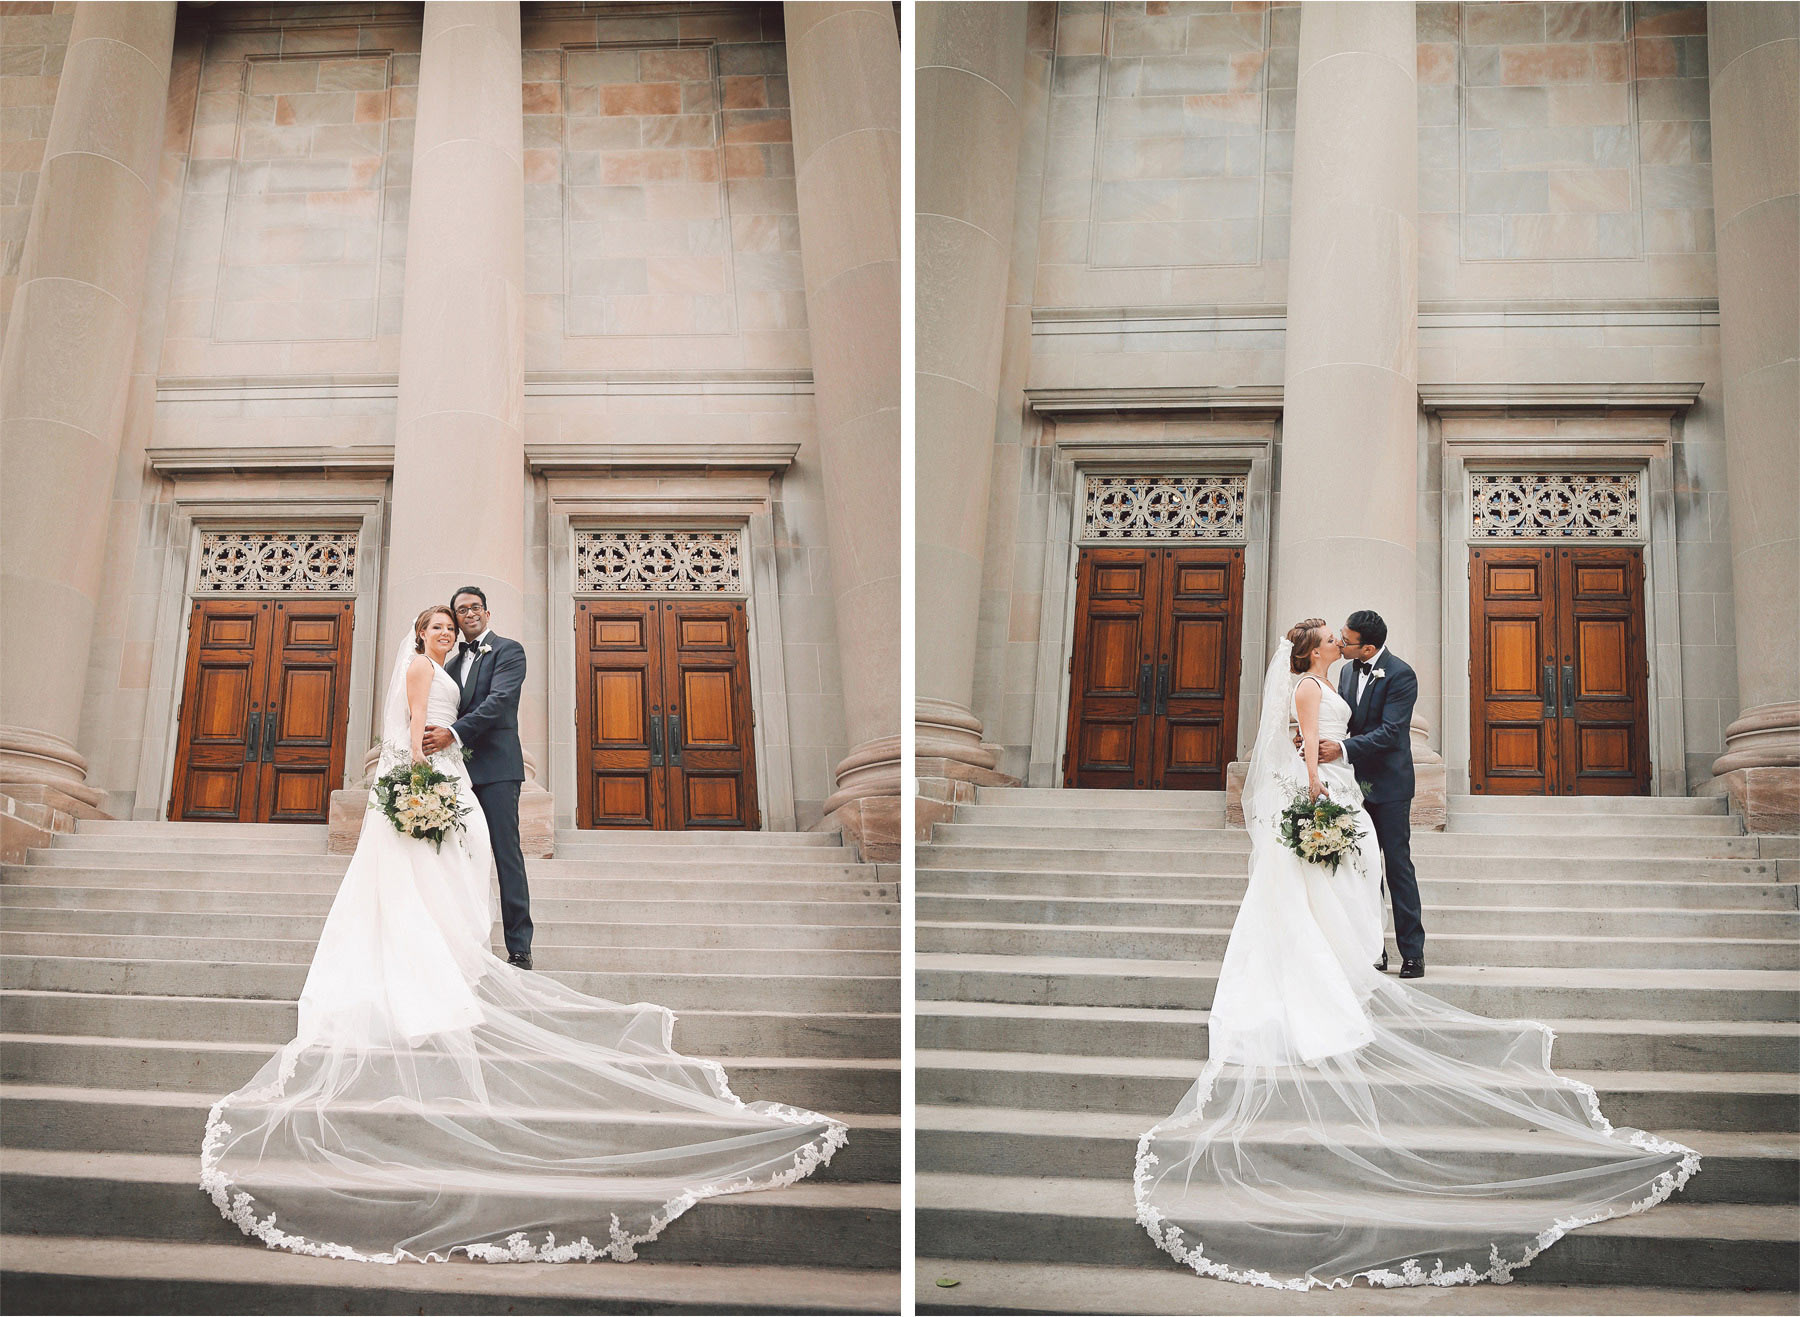 11-Minneapolis-Minnesota-Wedding-Photographer-by-Andrew-Vick-Photography--Spring-Temple-Israel-Synagogue-Bride-Groom-Embrace-Kiss-Vintage-Rachel-and-Venu.jpg